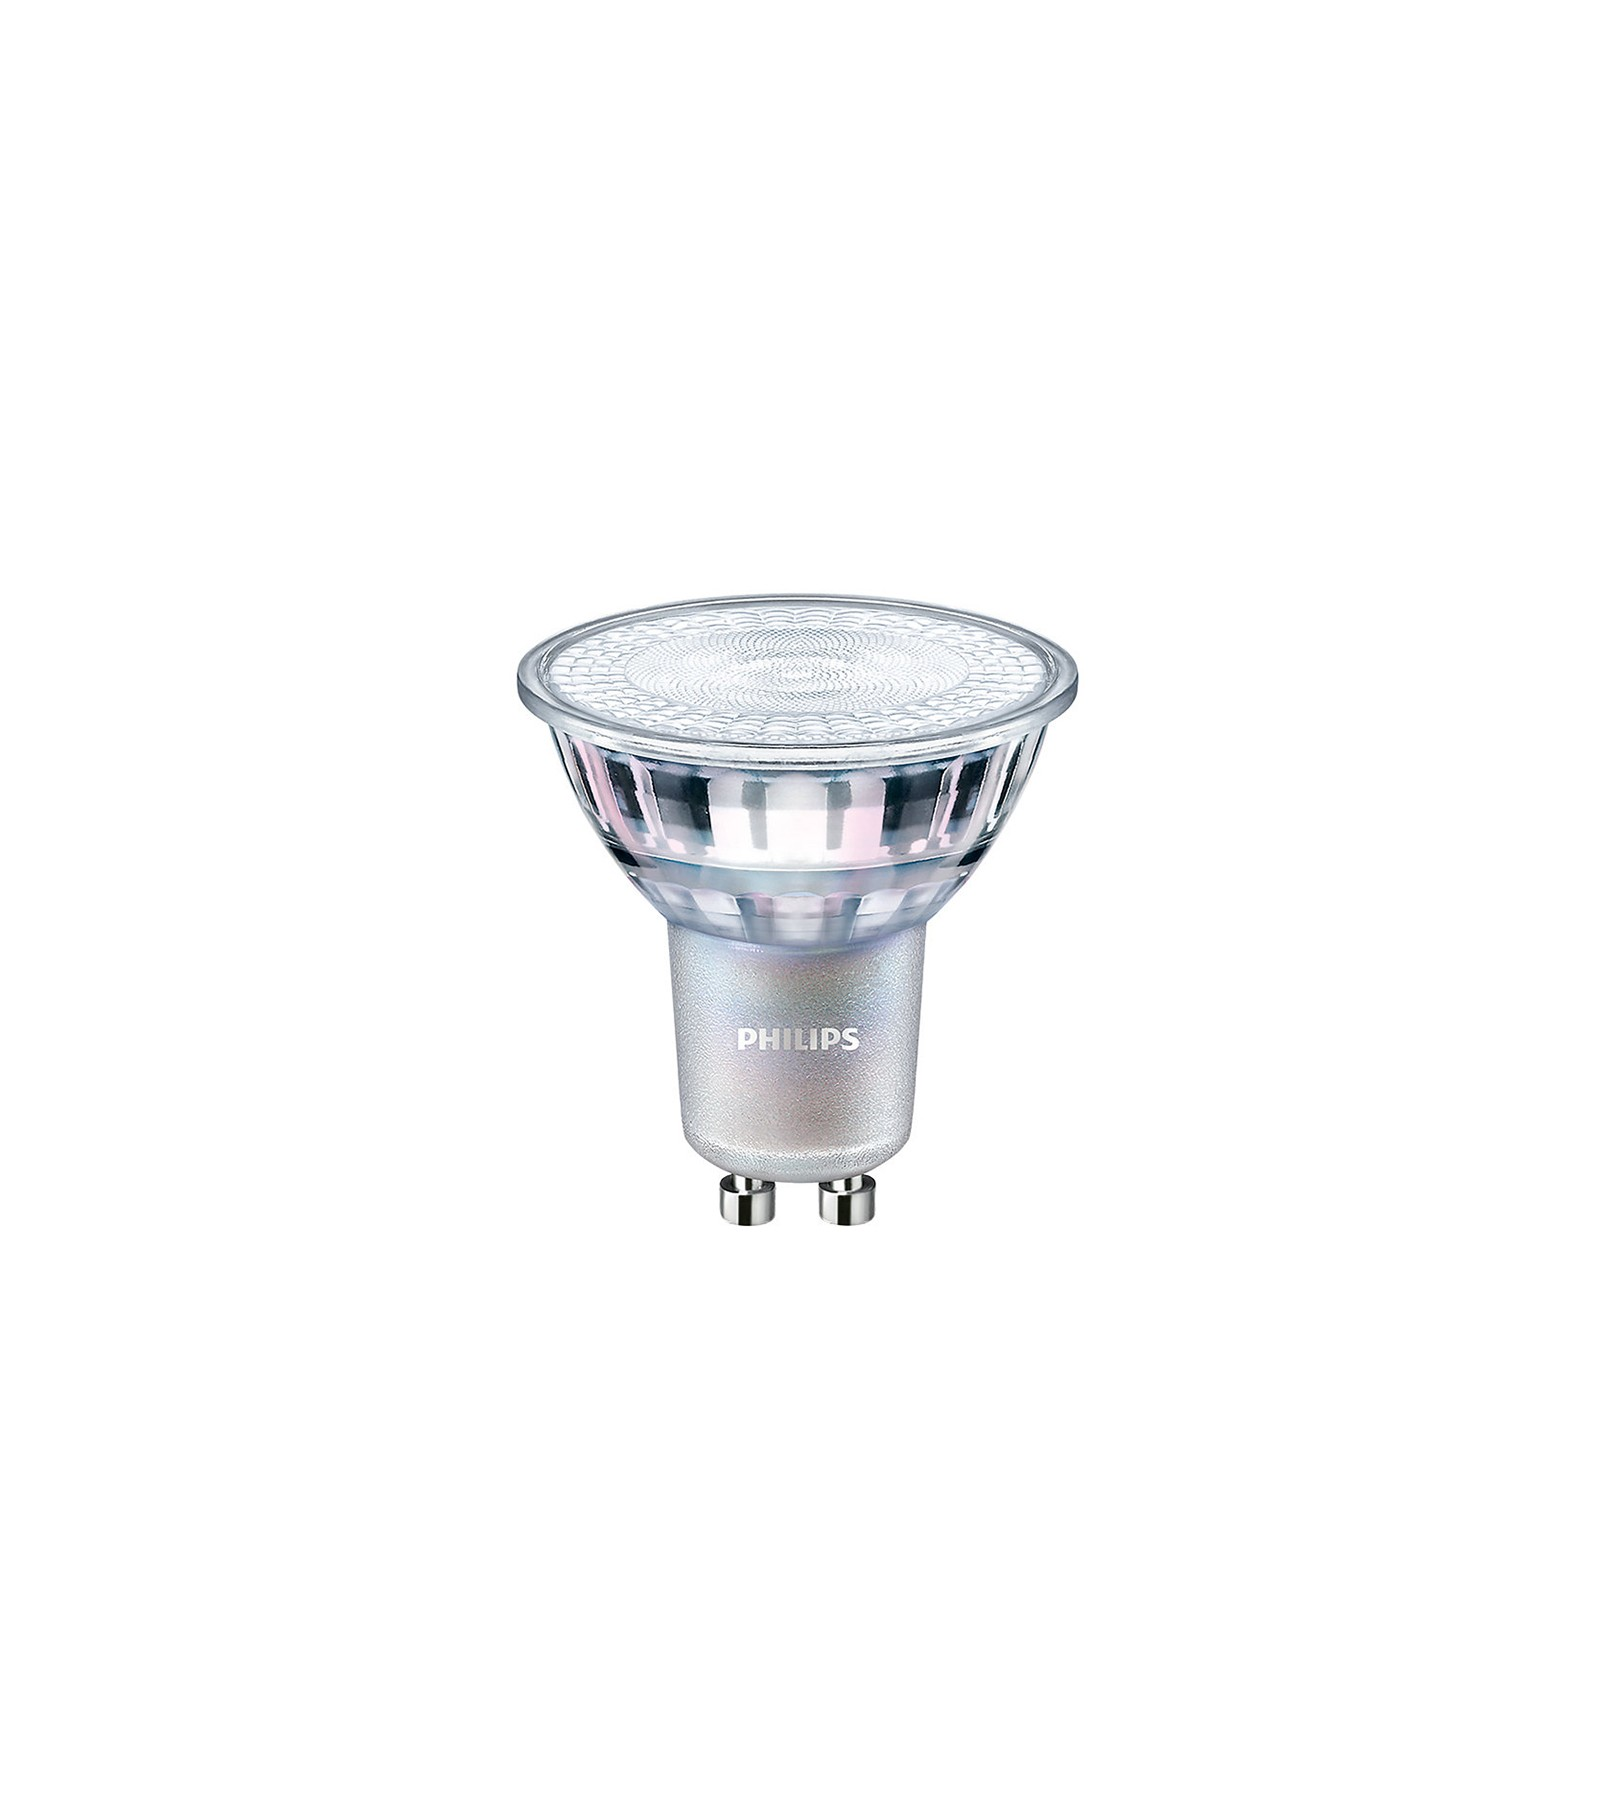 Ampoule Dimmable Ampoule Led Gu10 Mr16 Dimmable 3 7w 270lm équiv 35w